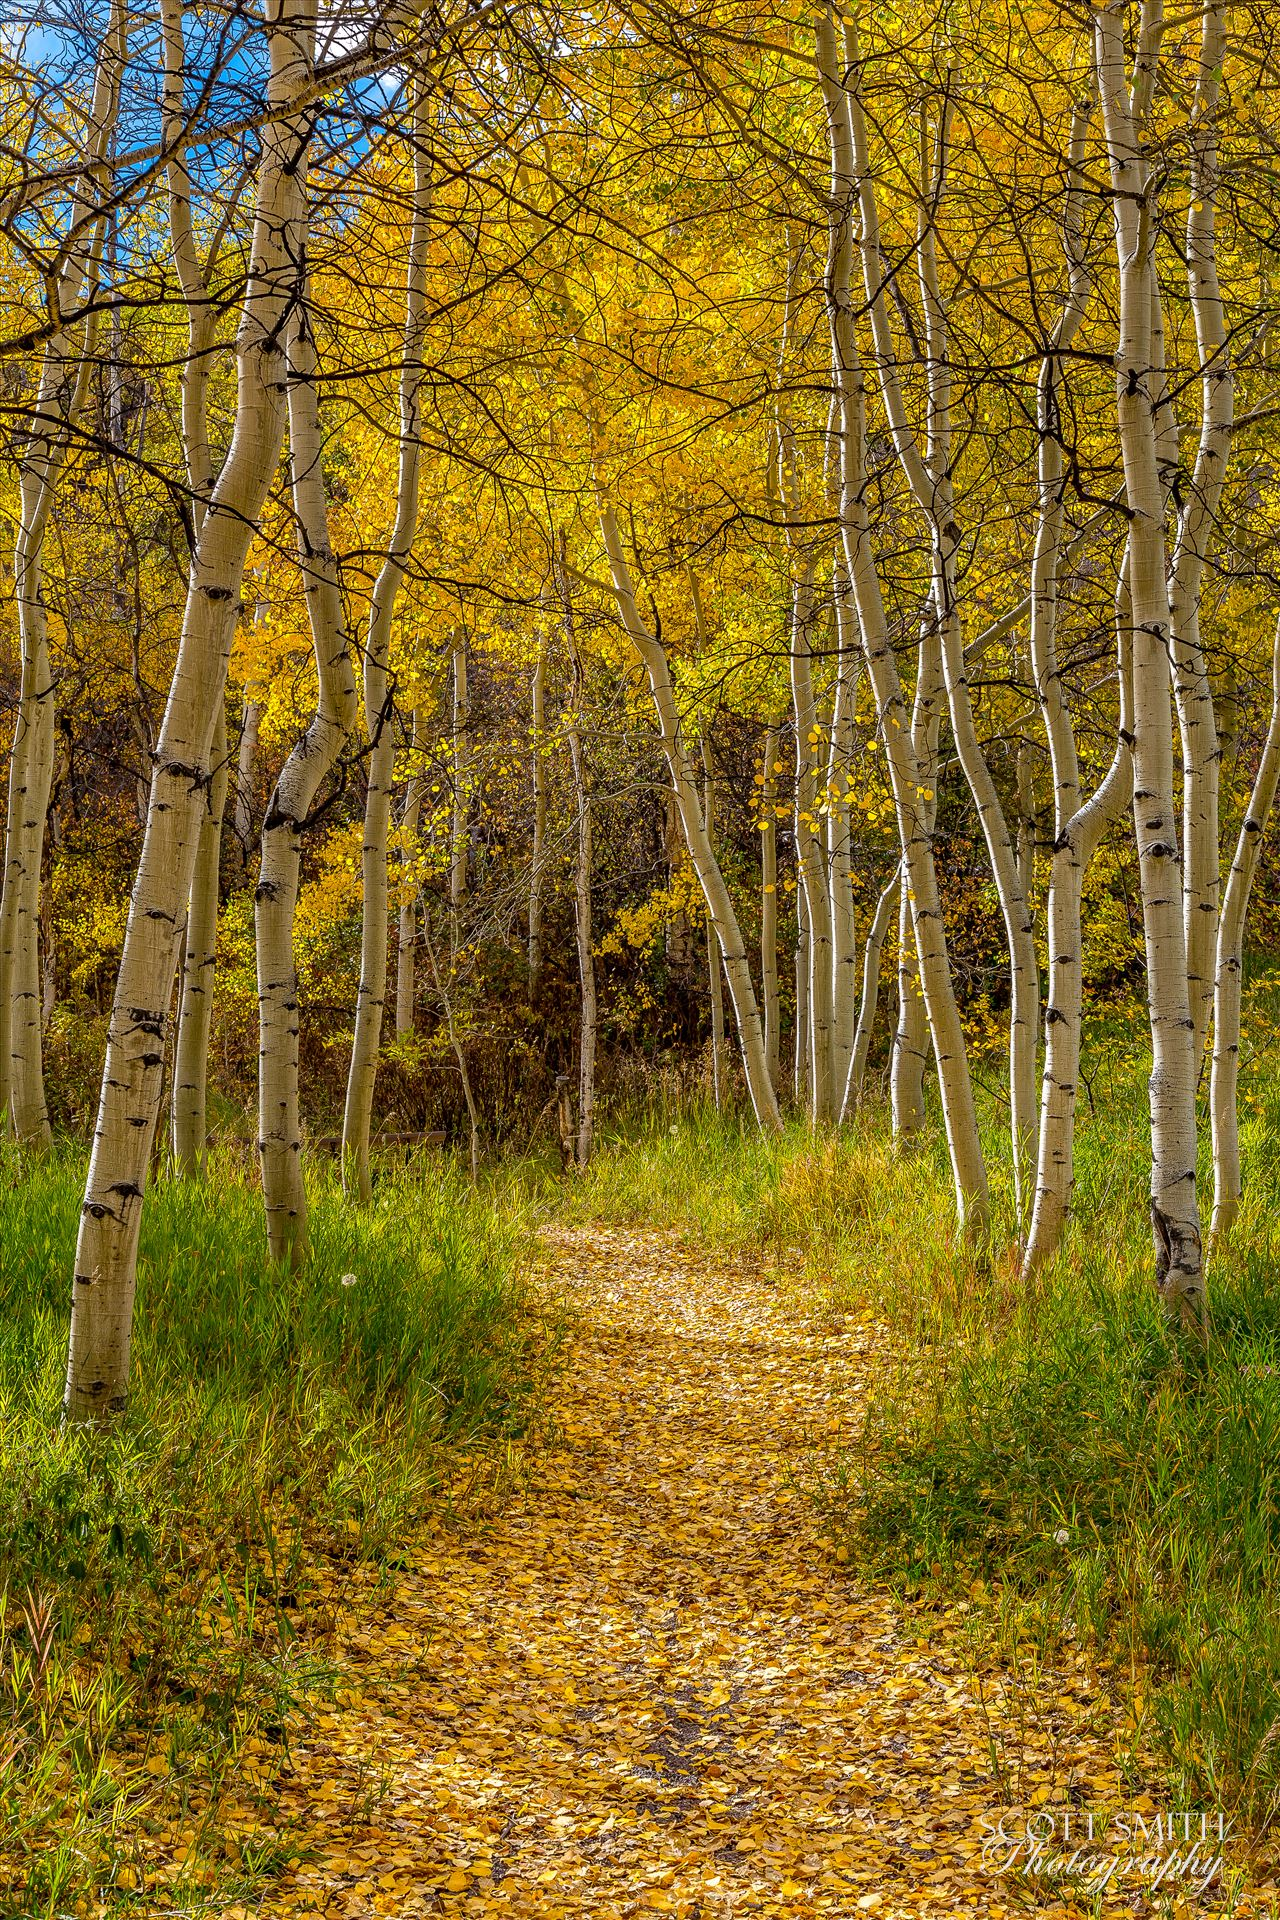 Rim Trail Aspens Beautiful aspens showing their fall colors along Rim Trail in Snowmass by Scott Smith Photos